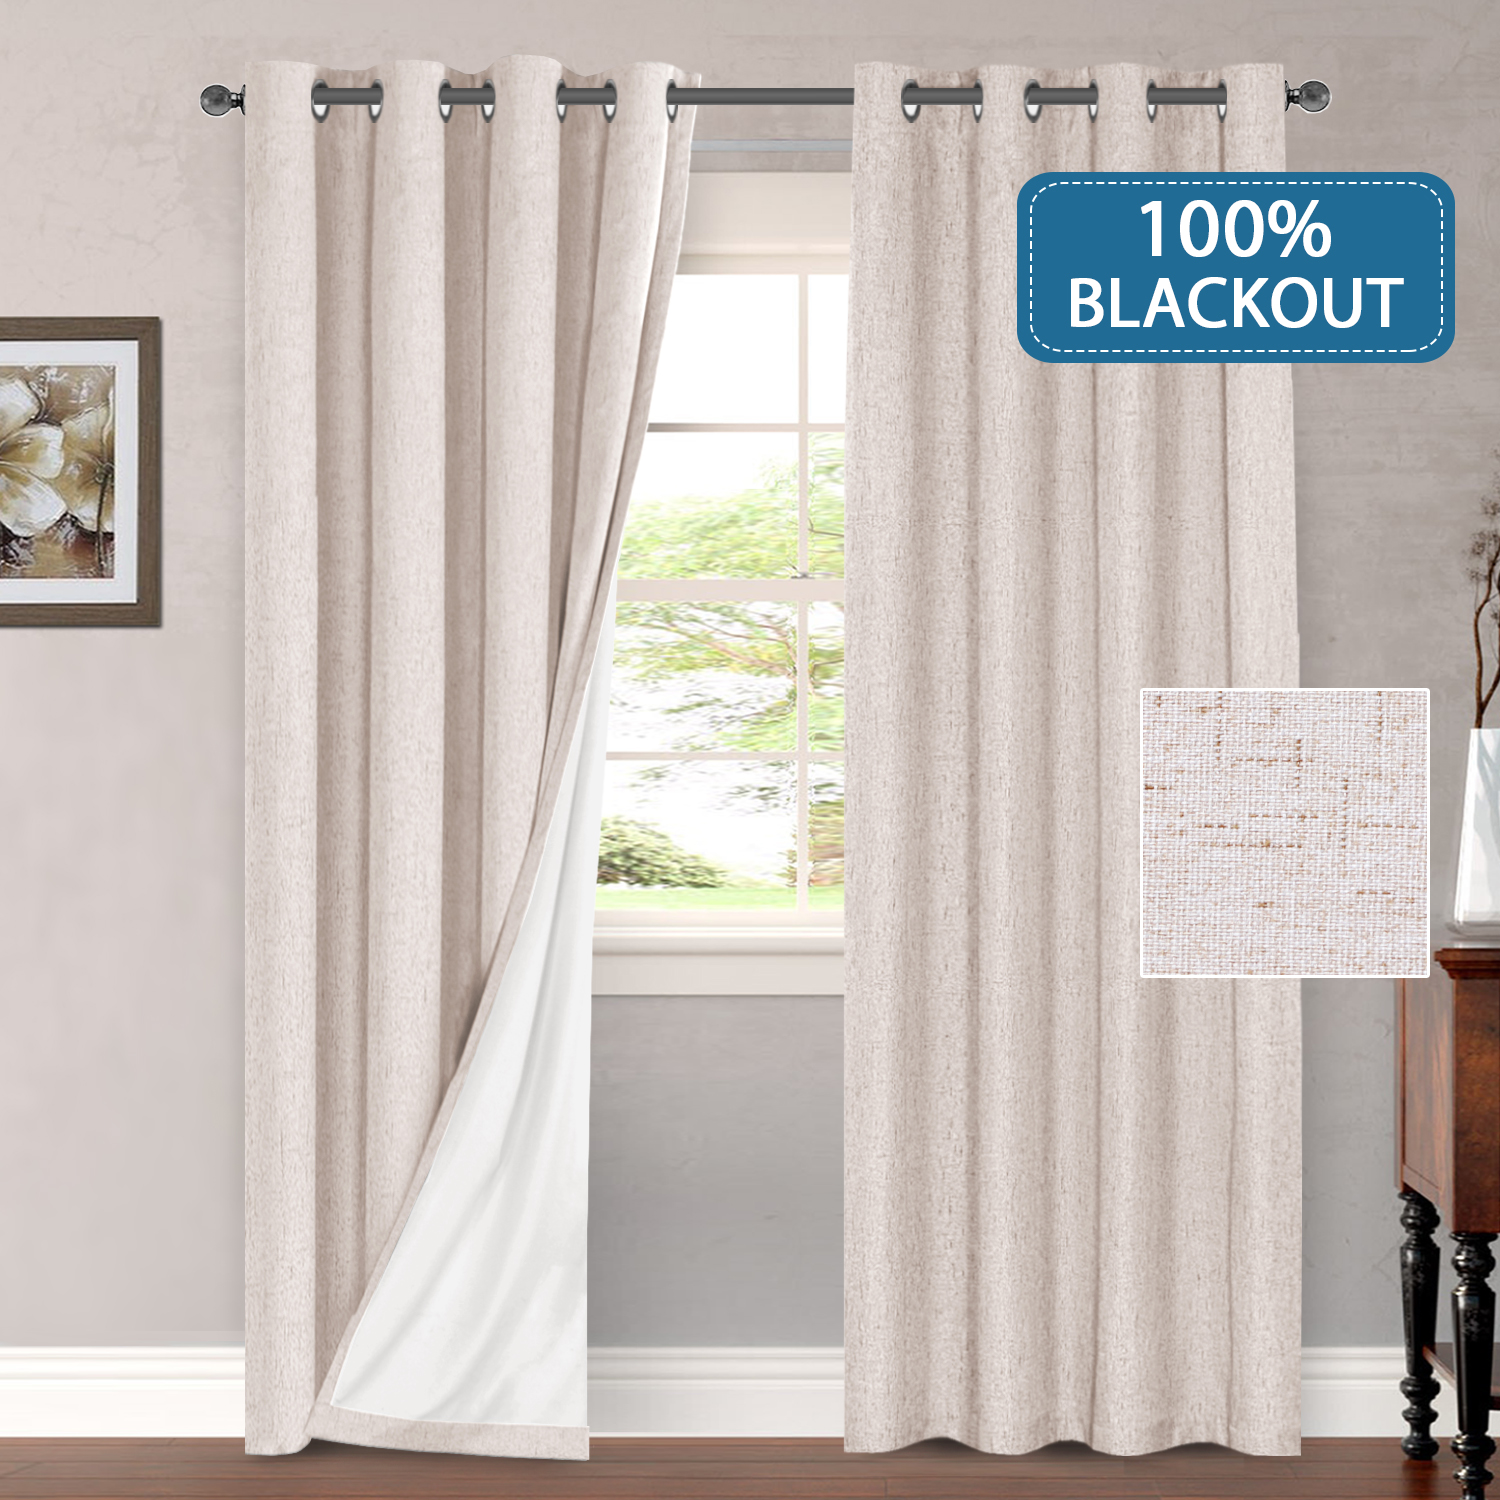 outdoor curtains 100 blackout draperies for patio waterproof linen look blackout curtains for bedroom extra long 108 inches grommets window curtain